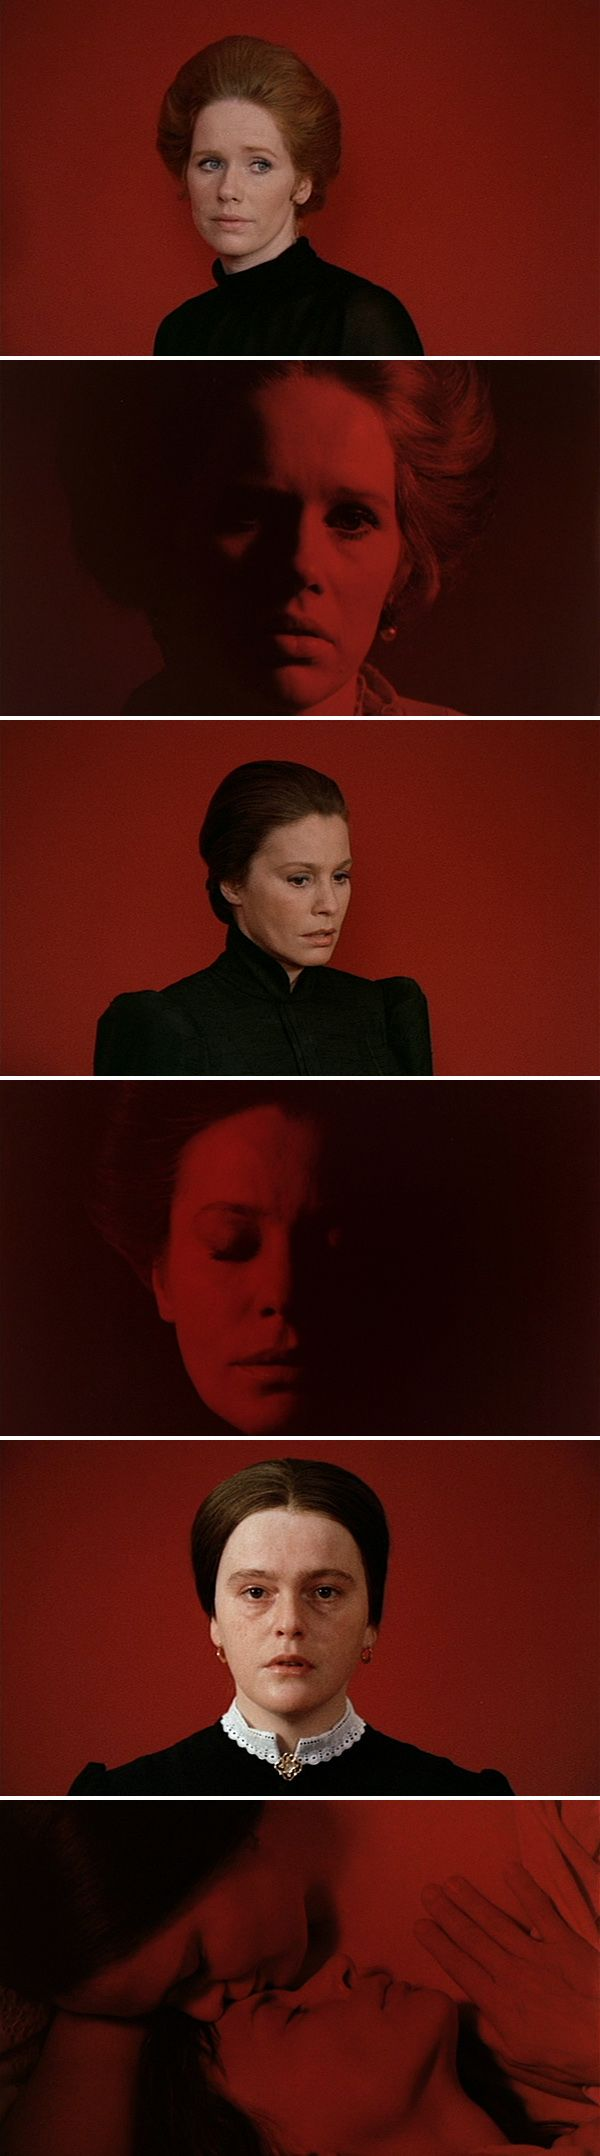 Ingmar Bergman - Cries and Whispers (1972)